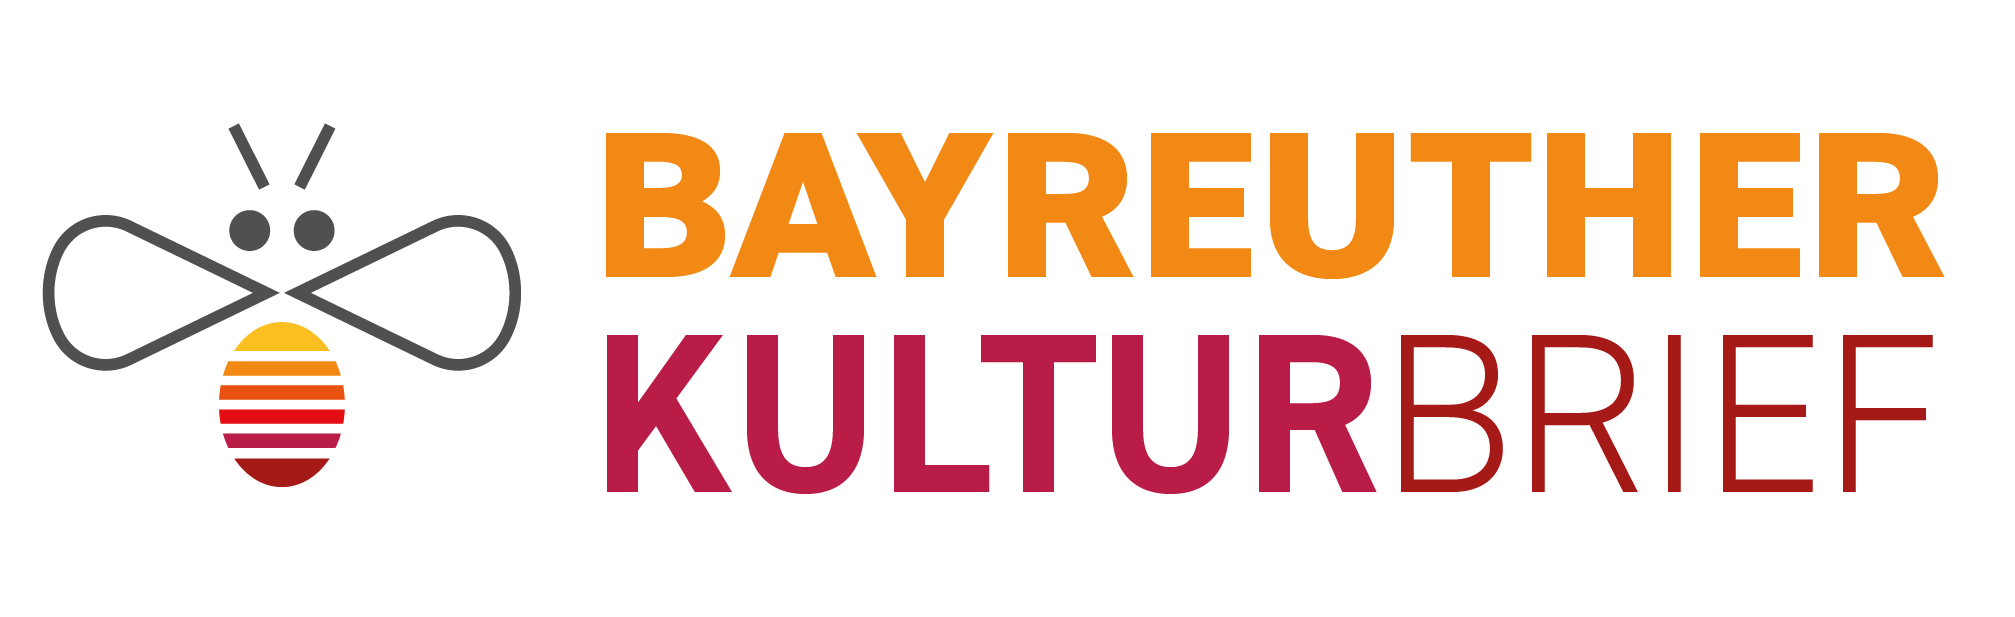 Bayreuther Kulturbrief